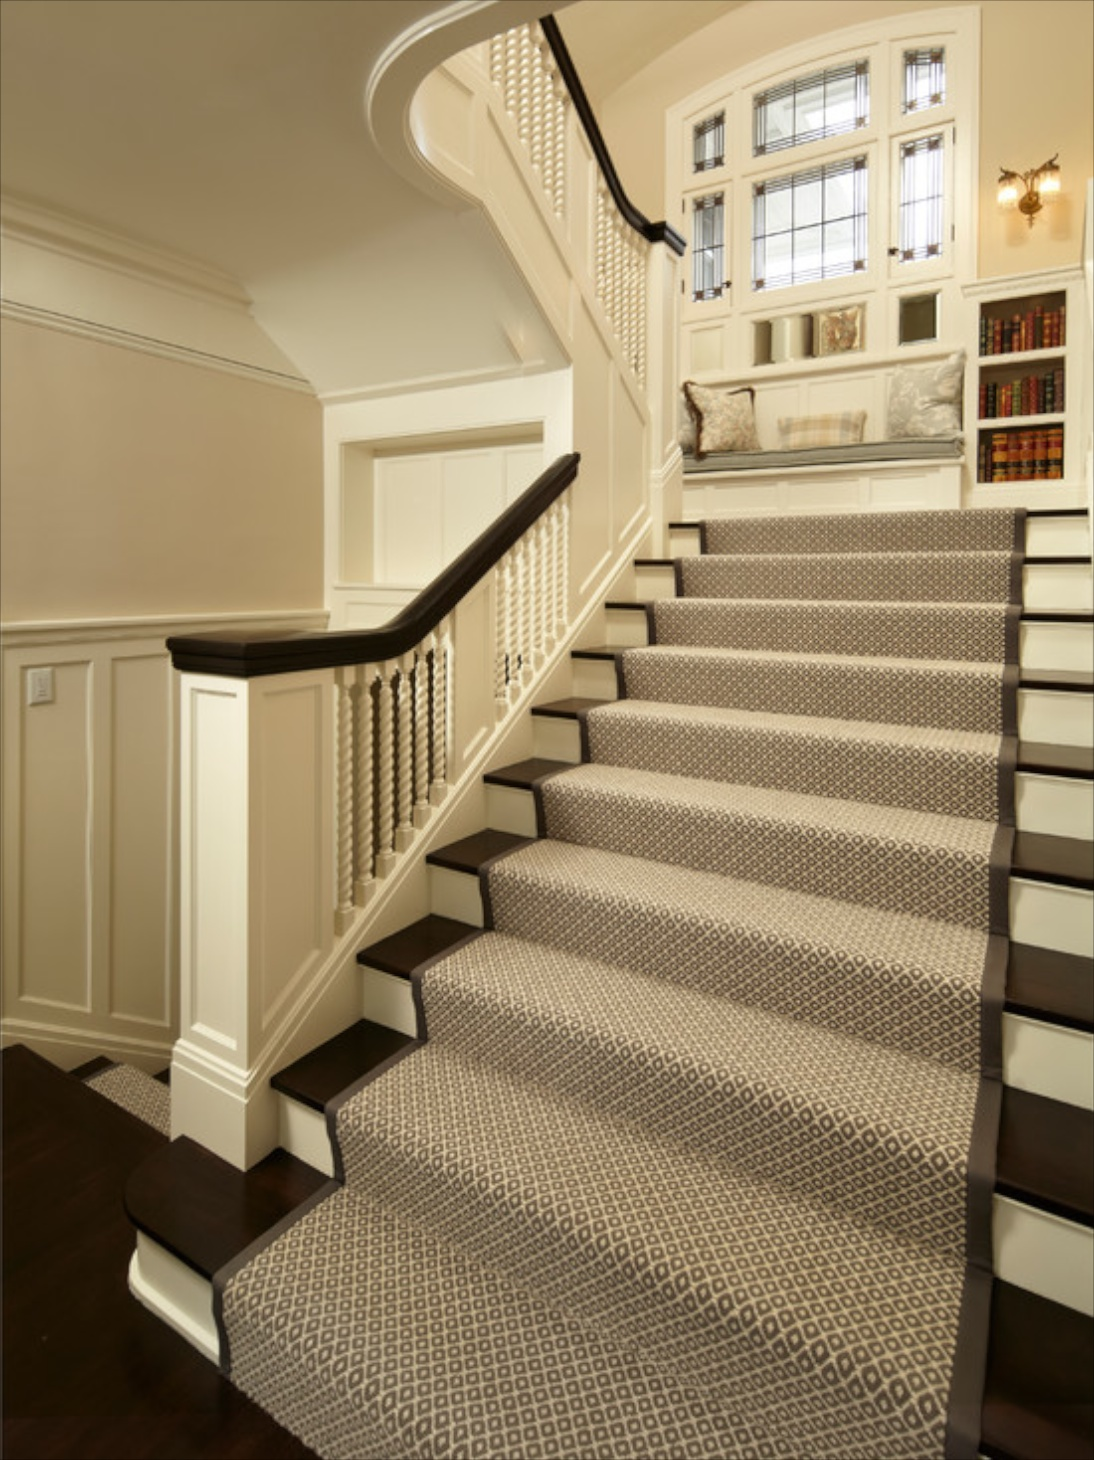 Carpet stairs carpeting stairs colors KYZEZYE